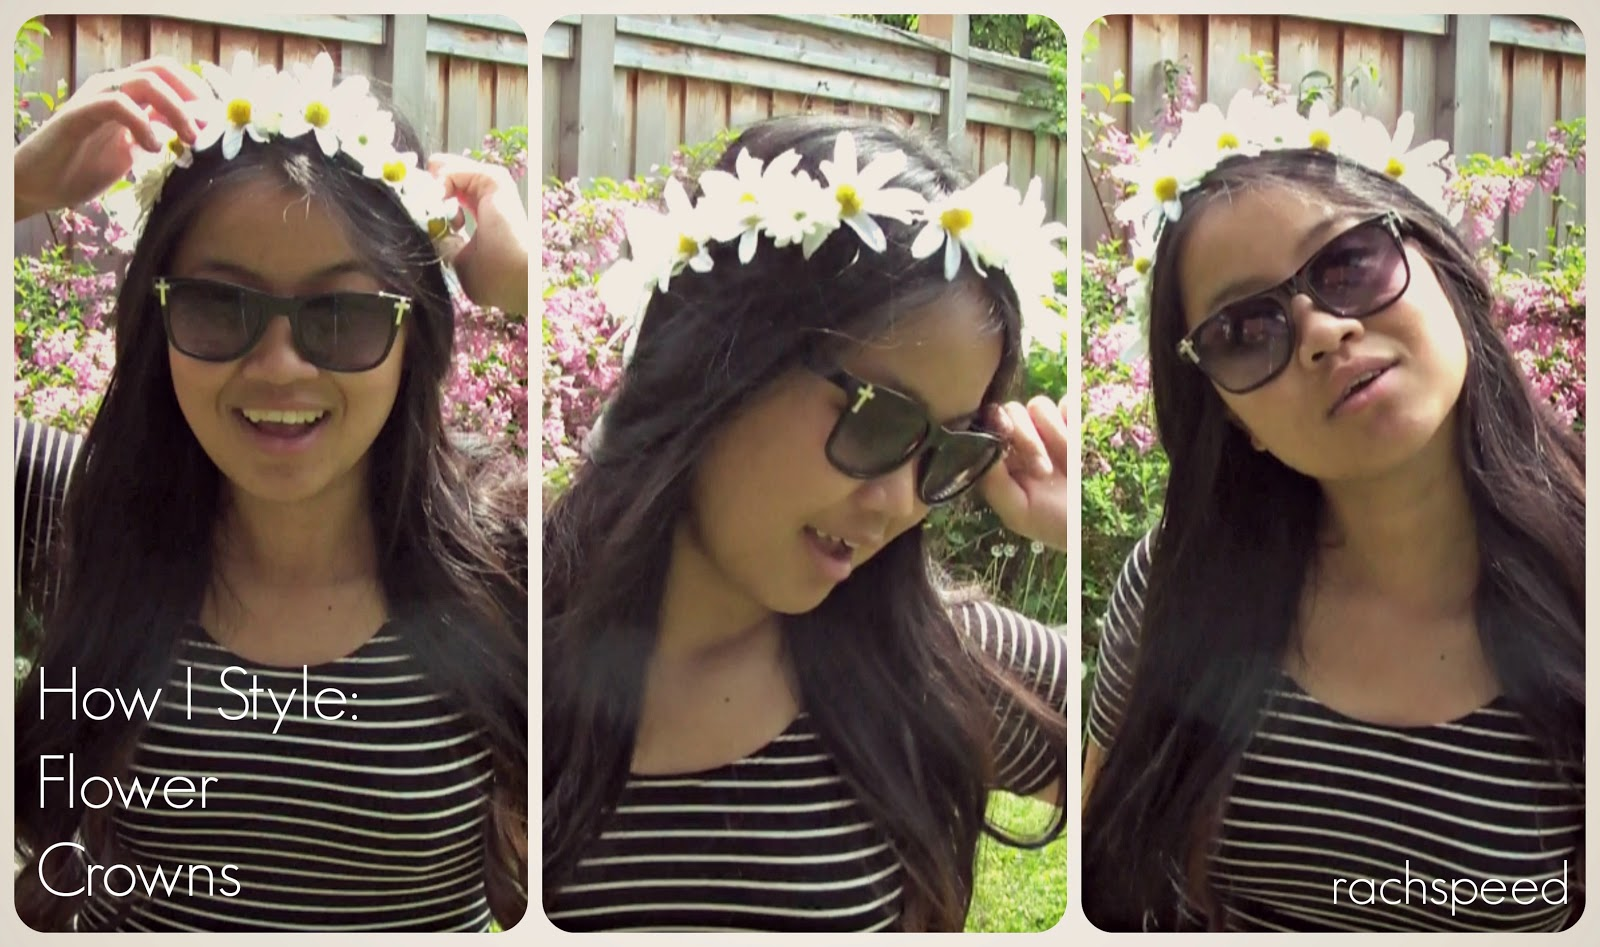 How i style flower crowns rach speed if you are an avid rachspeed reader you would know that i love flower crowns and have been sporting them in blog posts and instagram photos all year izmirmasajfo